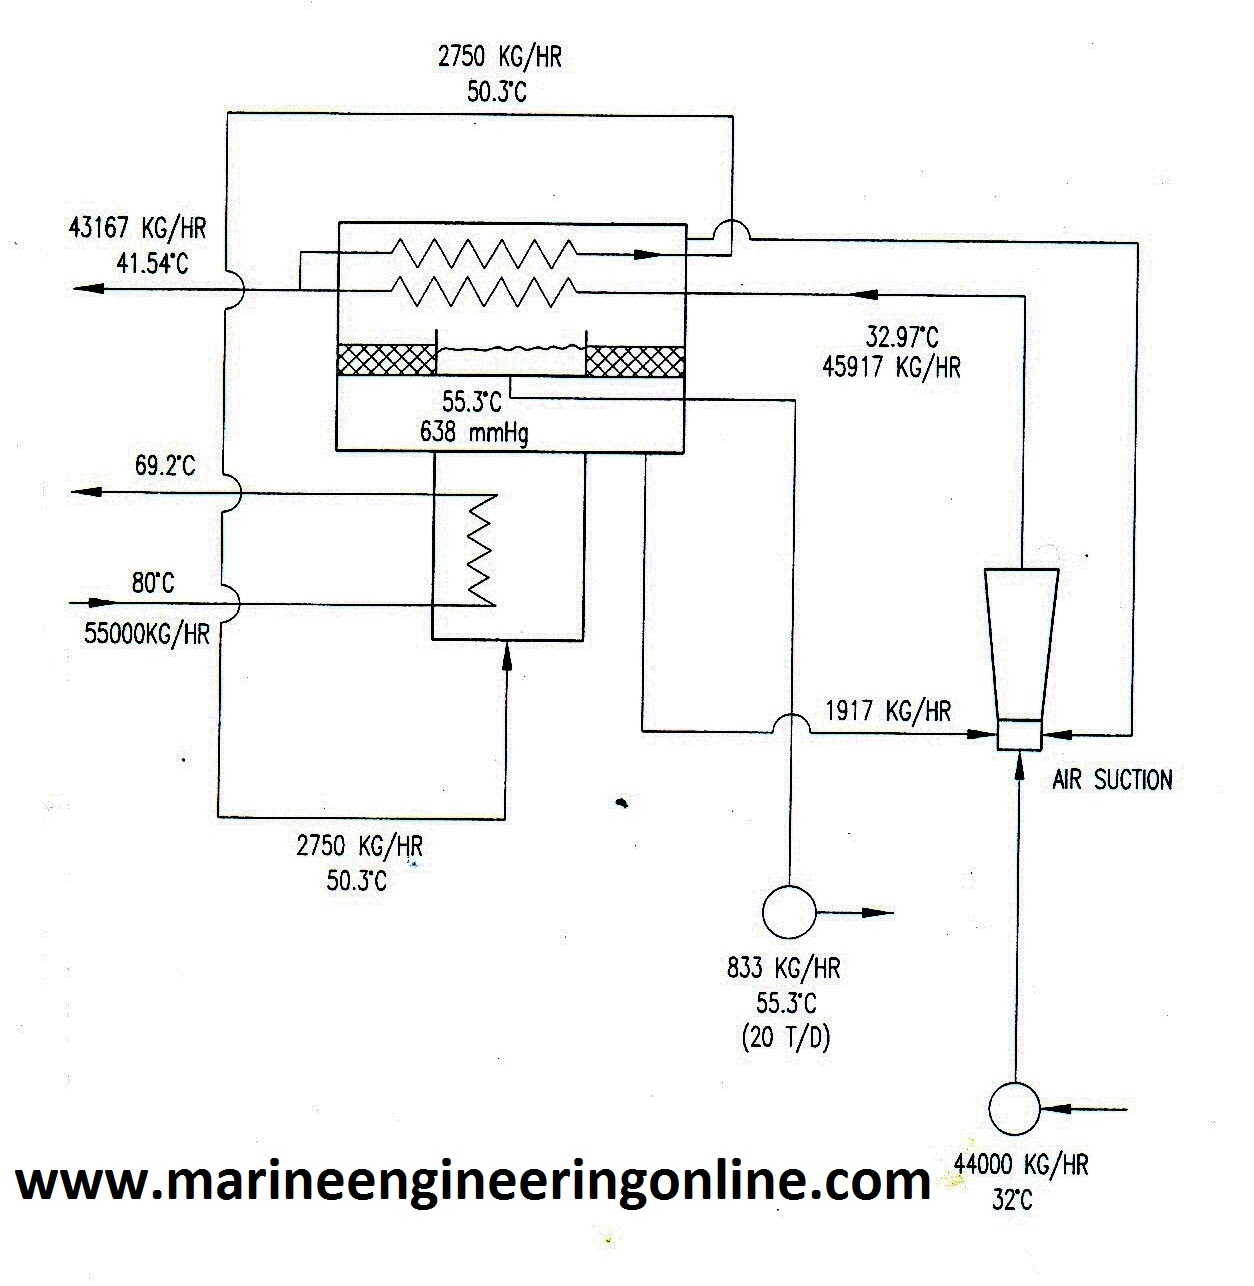 Refrigerator Heat Engine Diagram additionally Fresh Water Generator Or Evaporator Alfa Laval Type also Chiller Control Wiring Diagram further Fresh Water Generators besides Fresh Water Generator Zfs Hdzf. on fresh water generator or evaporator alfa laval type